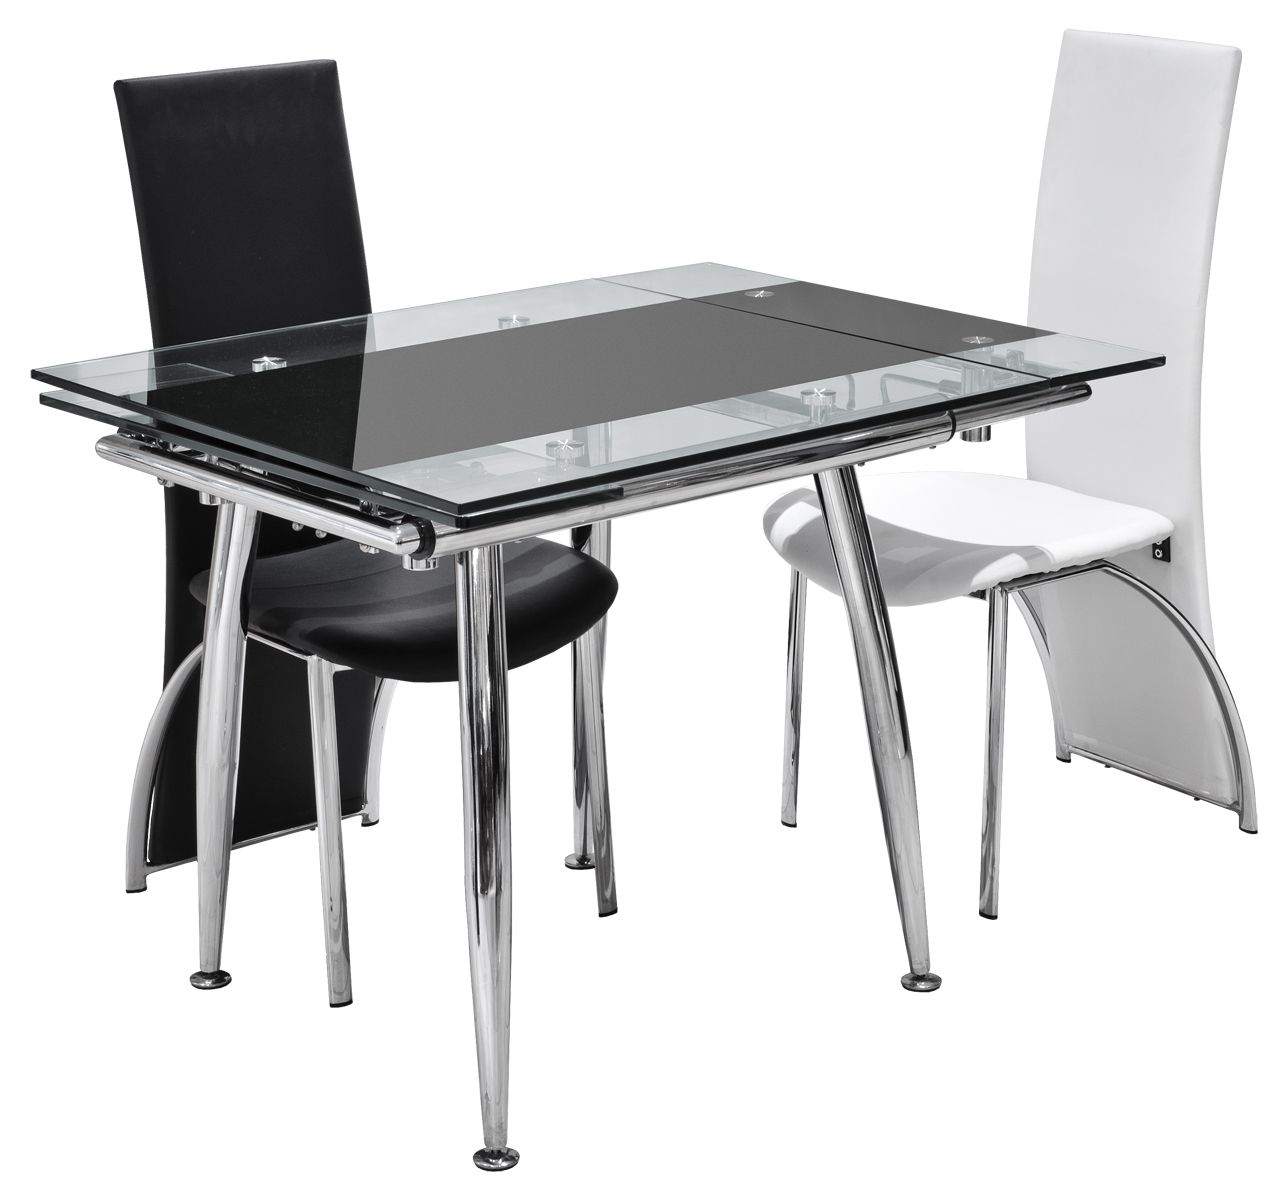 space saving dining table and chairs big boy uk chic paradis home furniture online